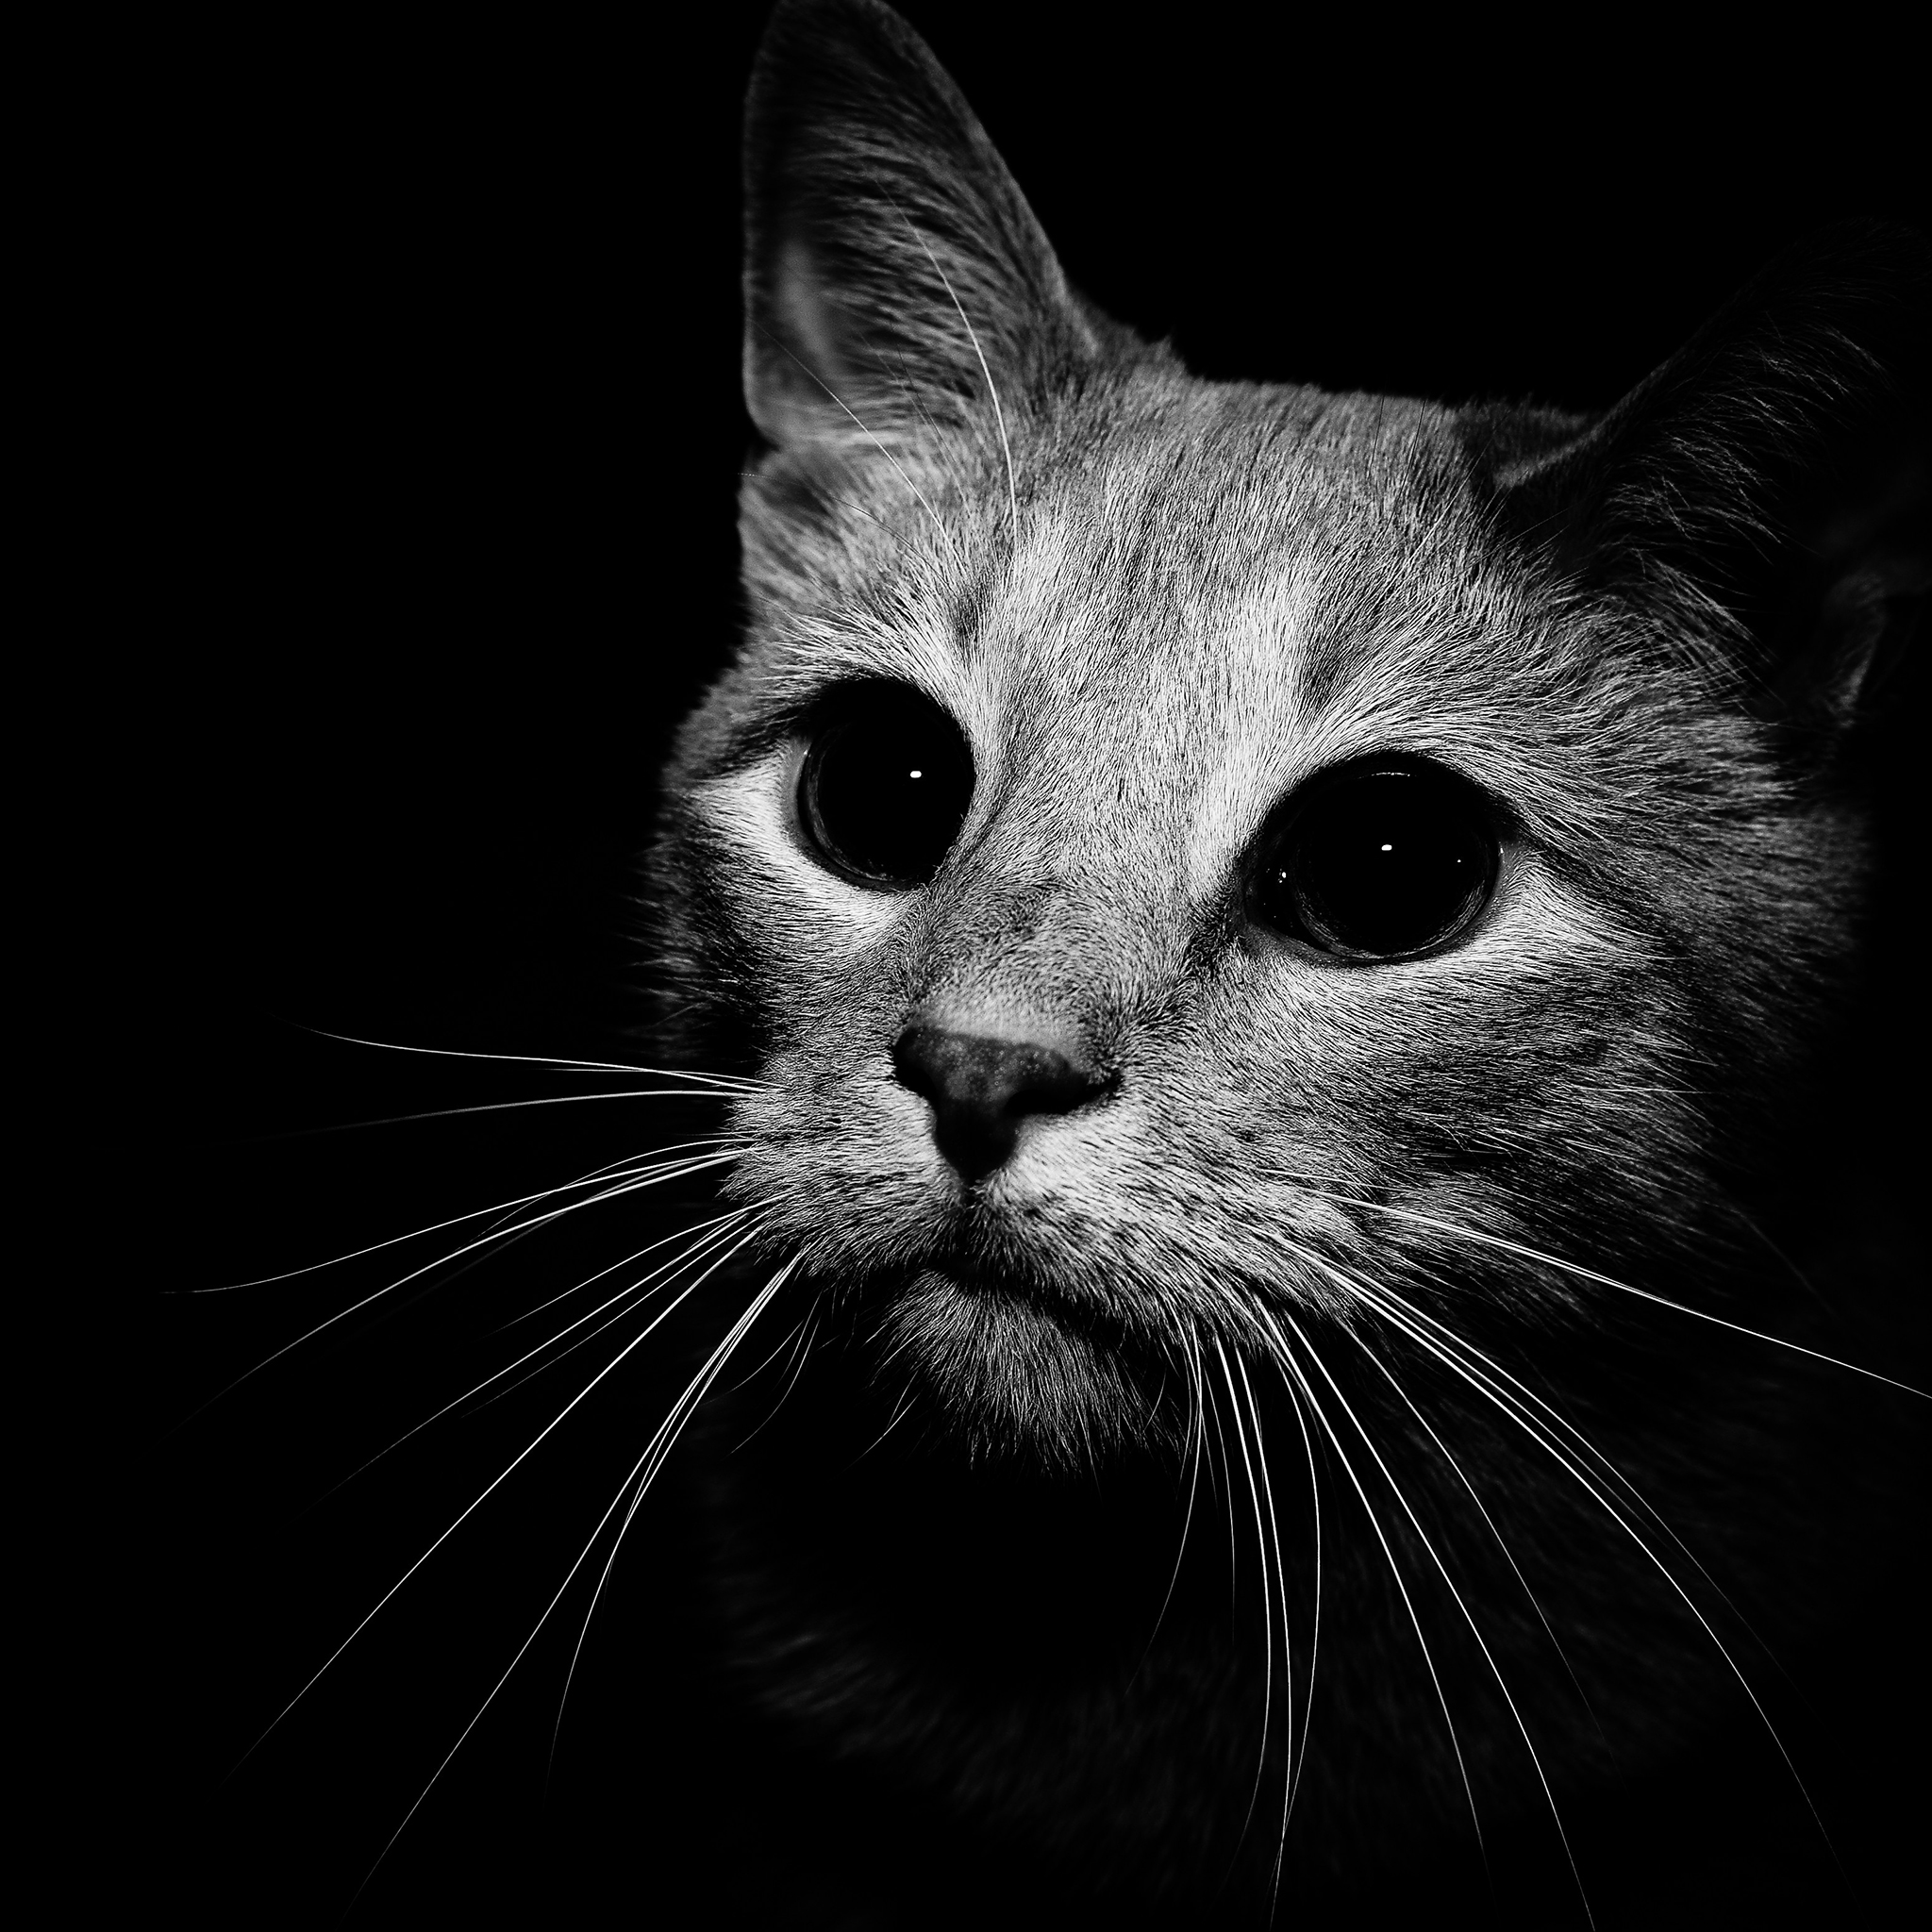 Cat in Black and White 3Wallpapers iPad Retina Cat in Black and White   iPad Retina